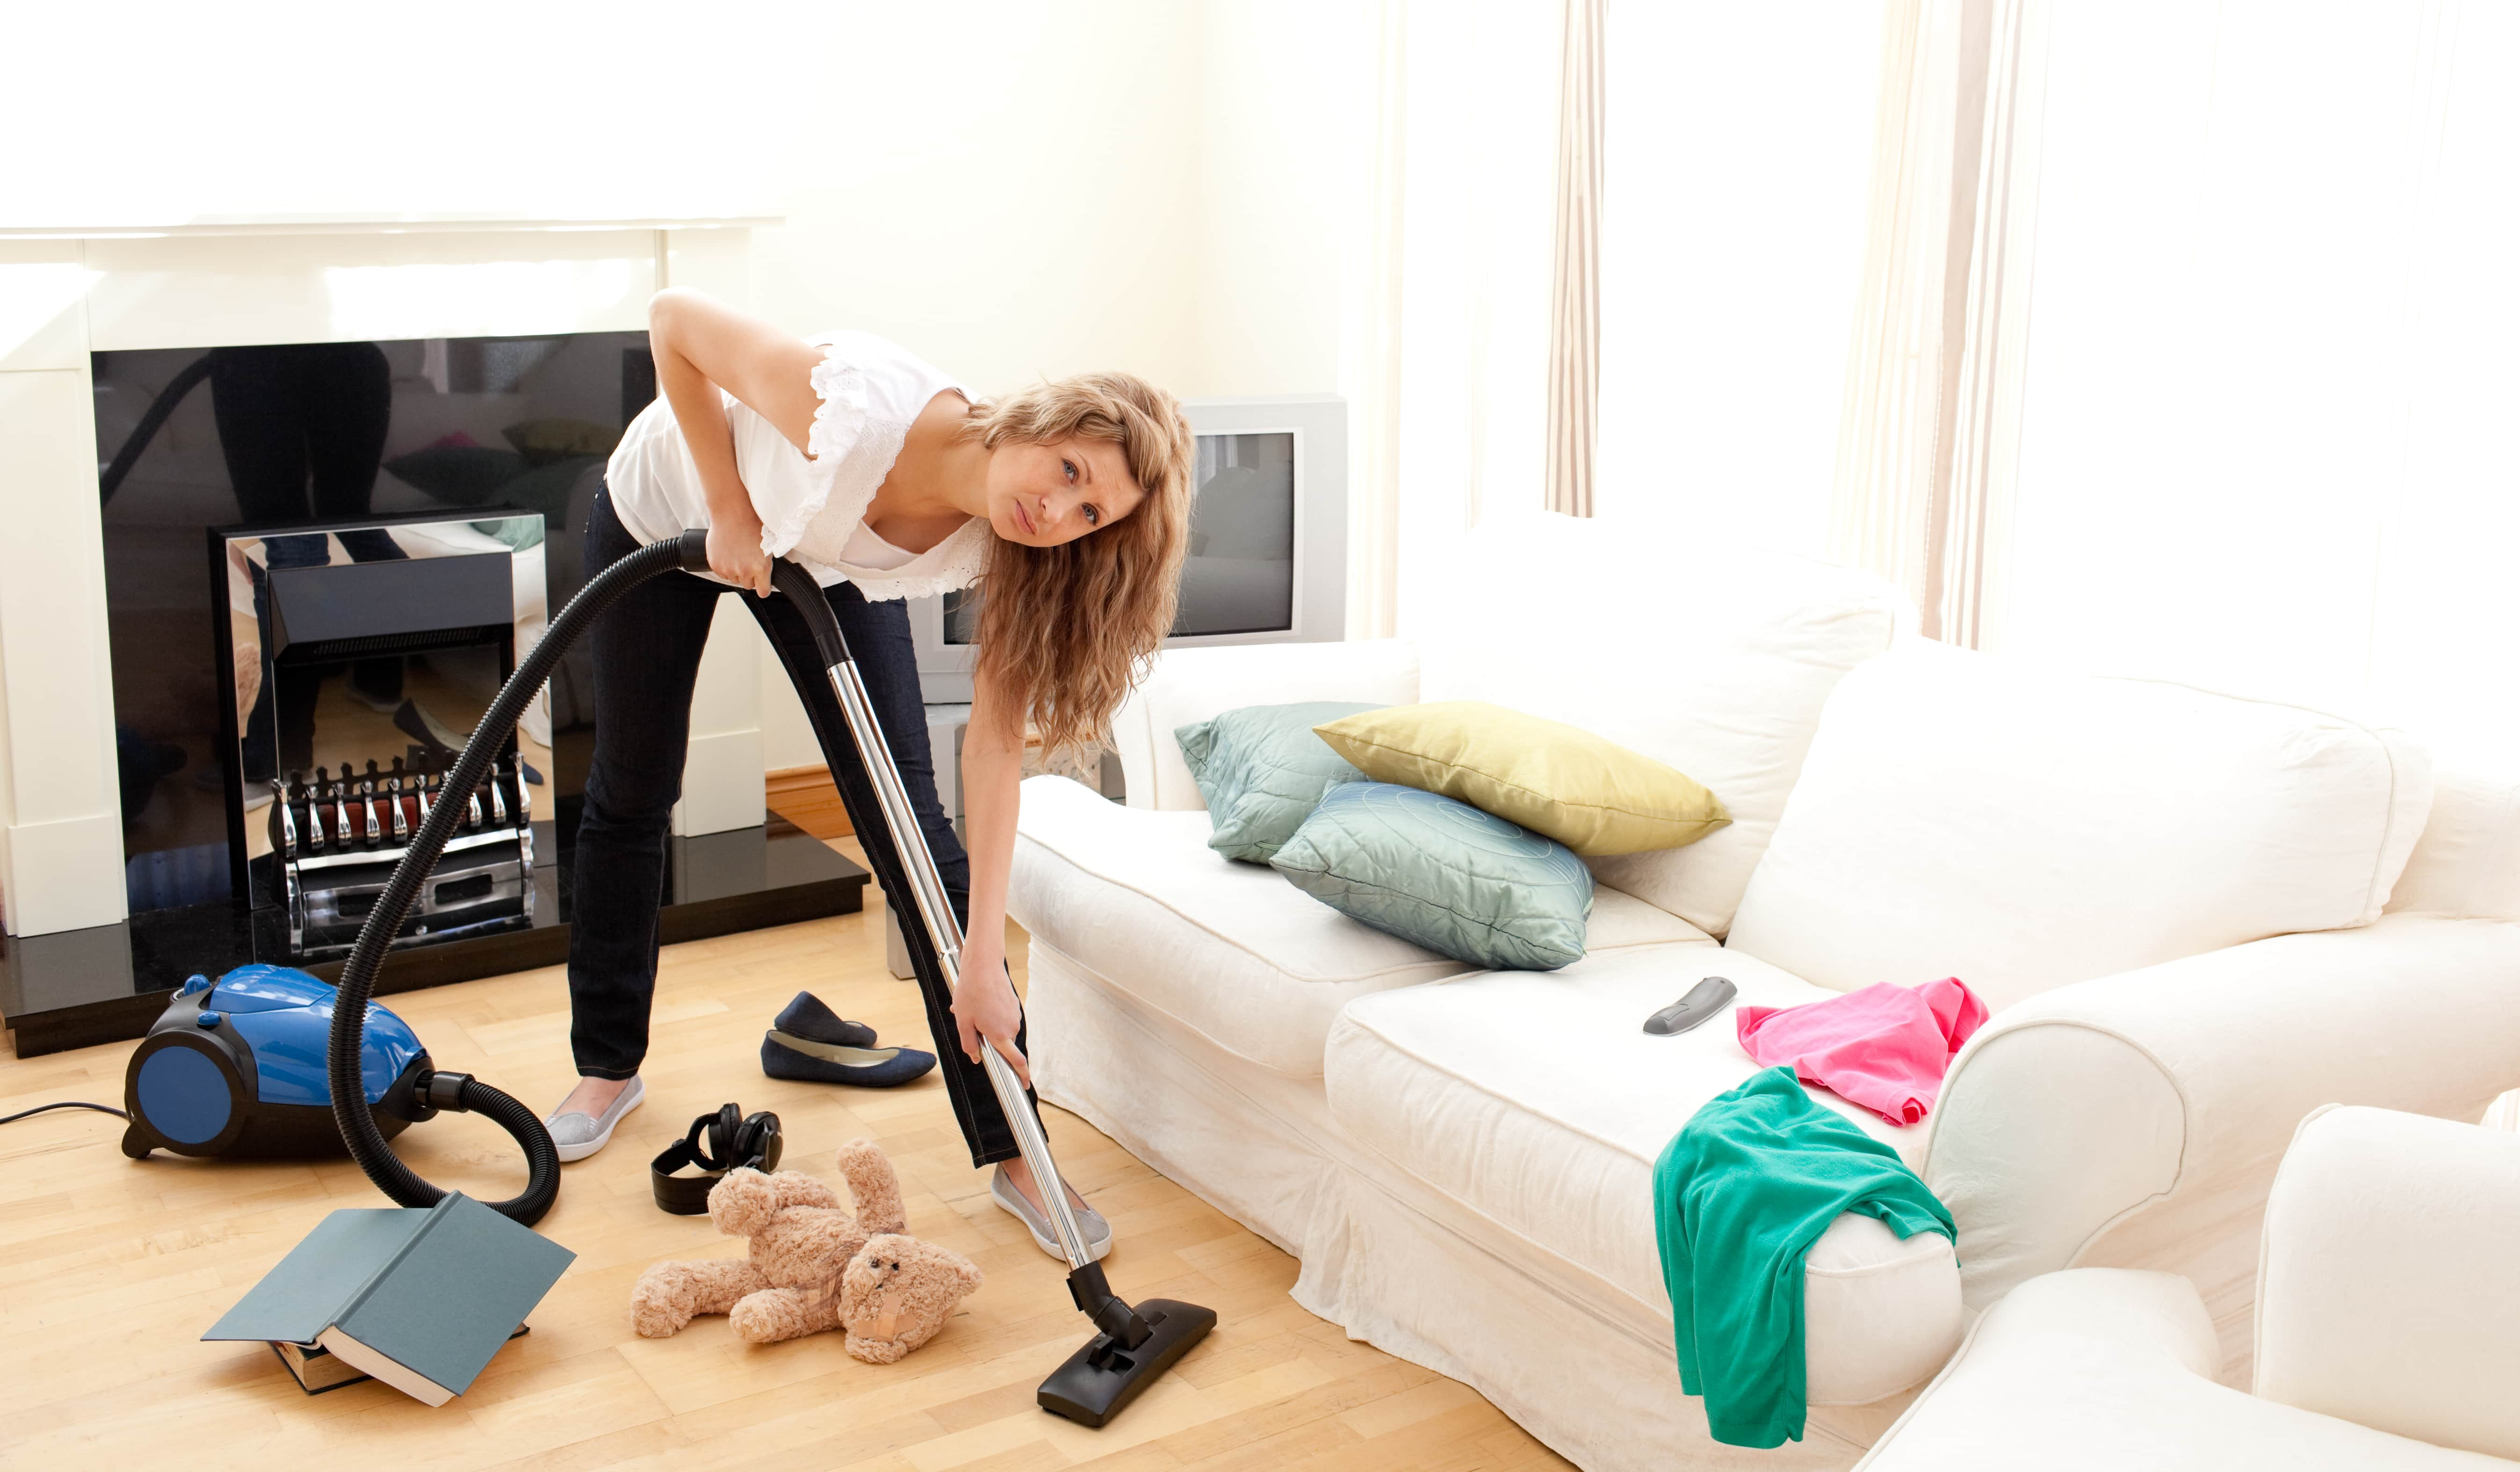 A woman vacuuming the living room with bad posture